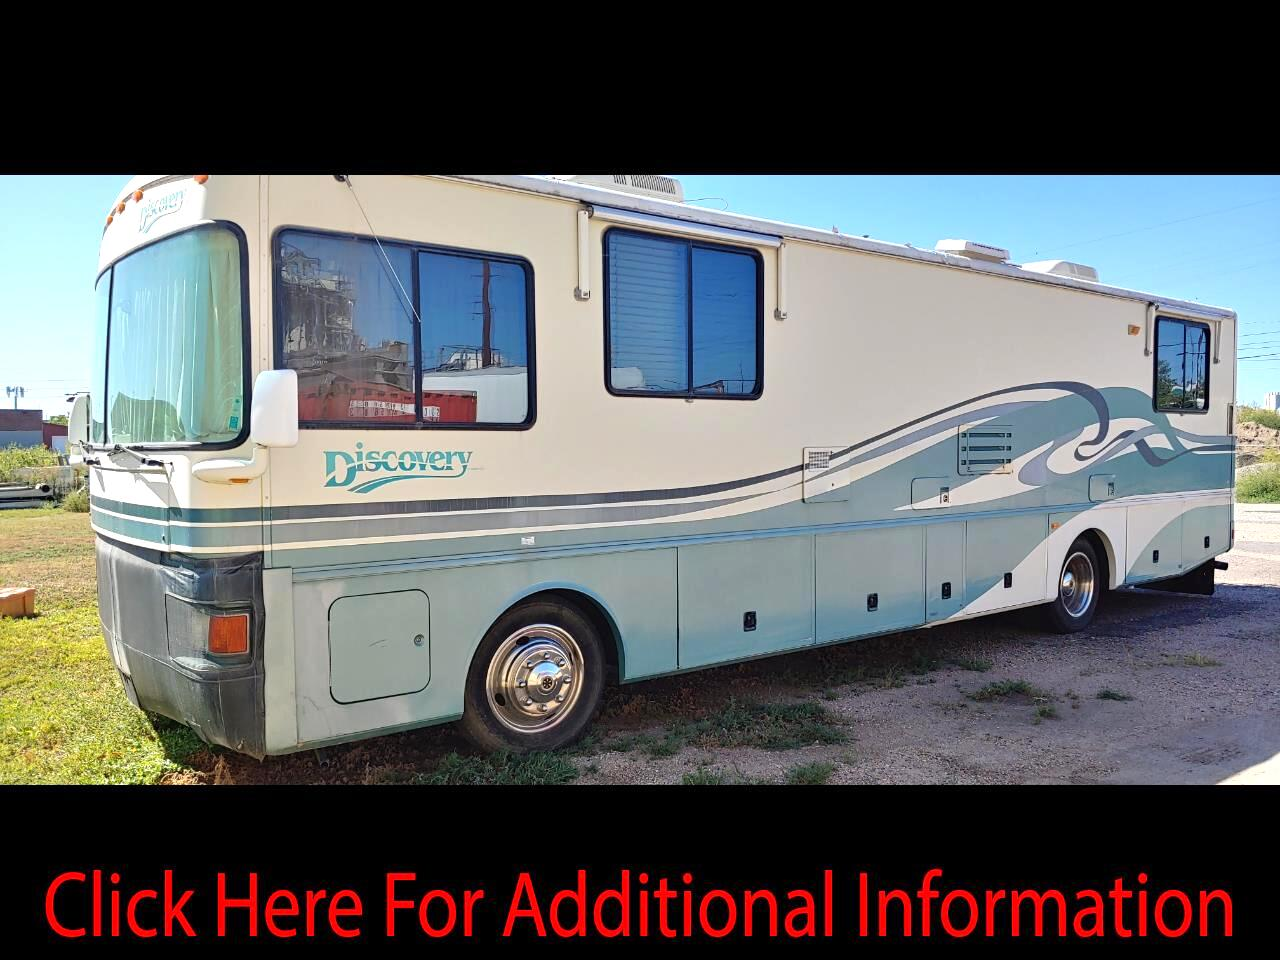 1997 Fleetwood Discovery 36A